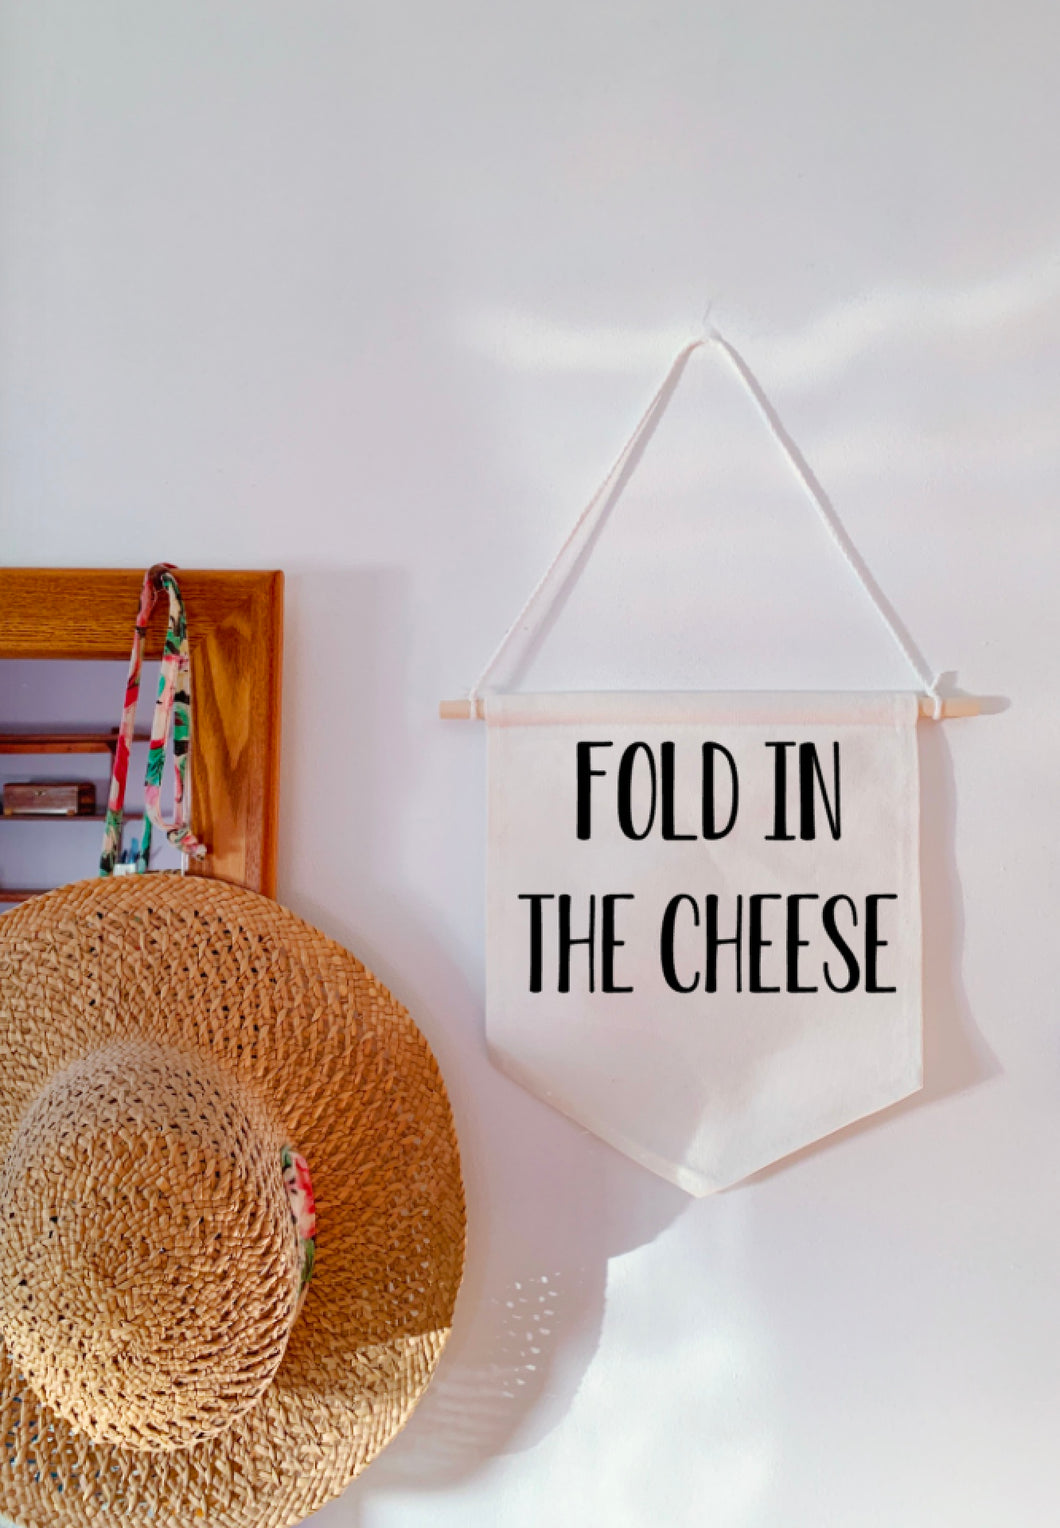 Fold In The Cheese Moira Rose Schitt's Creek Banner